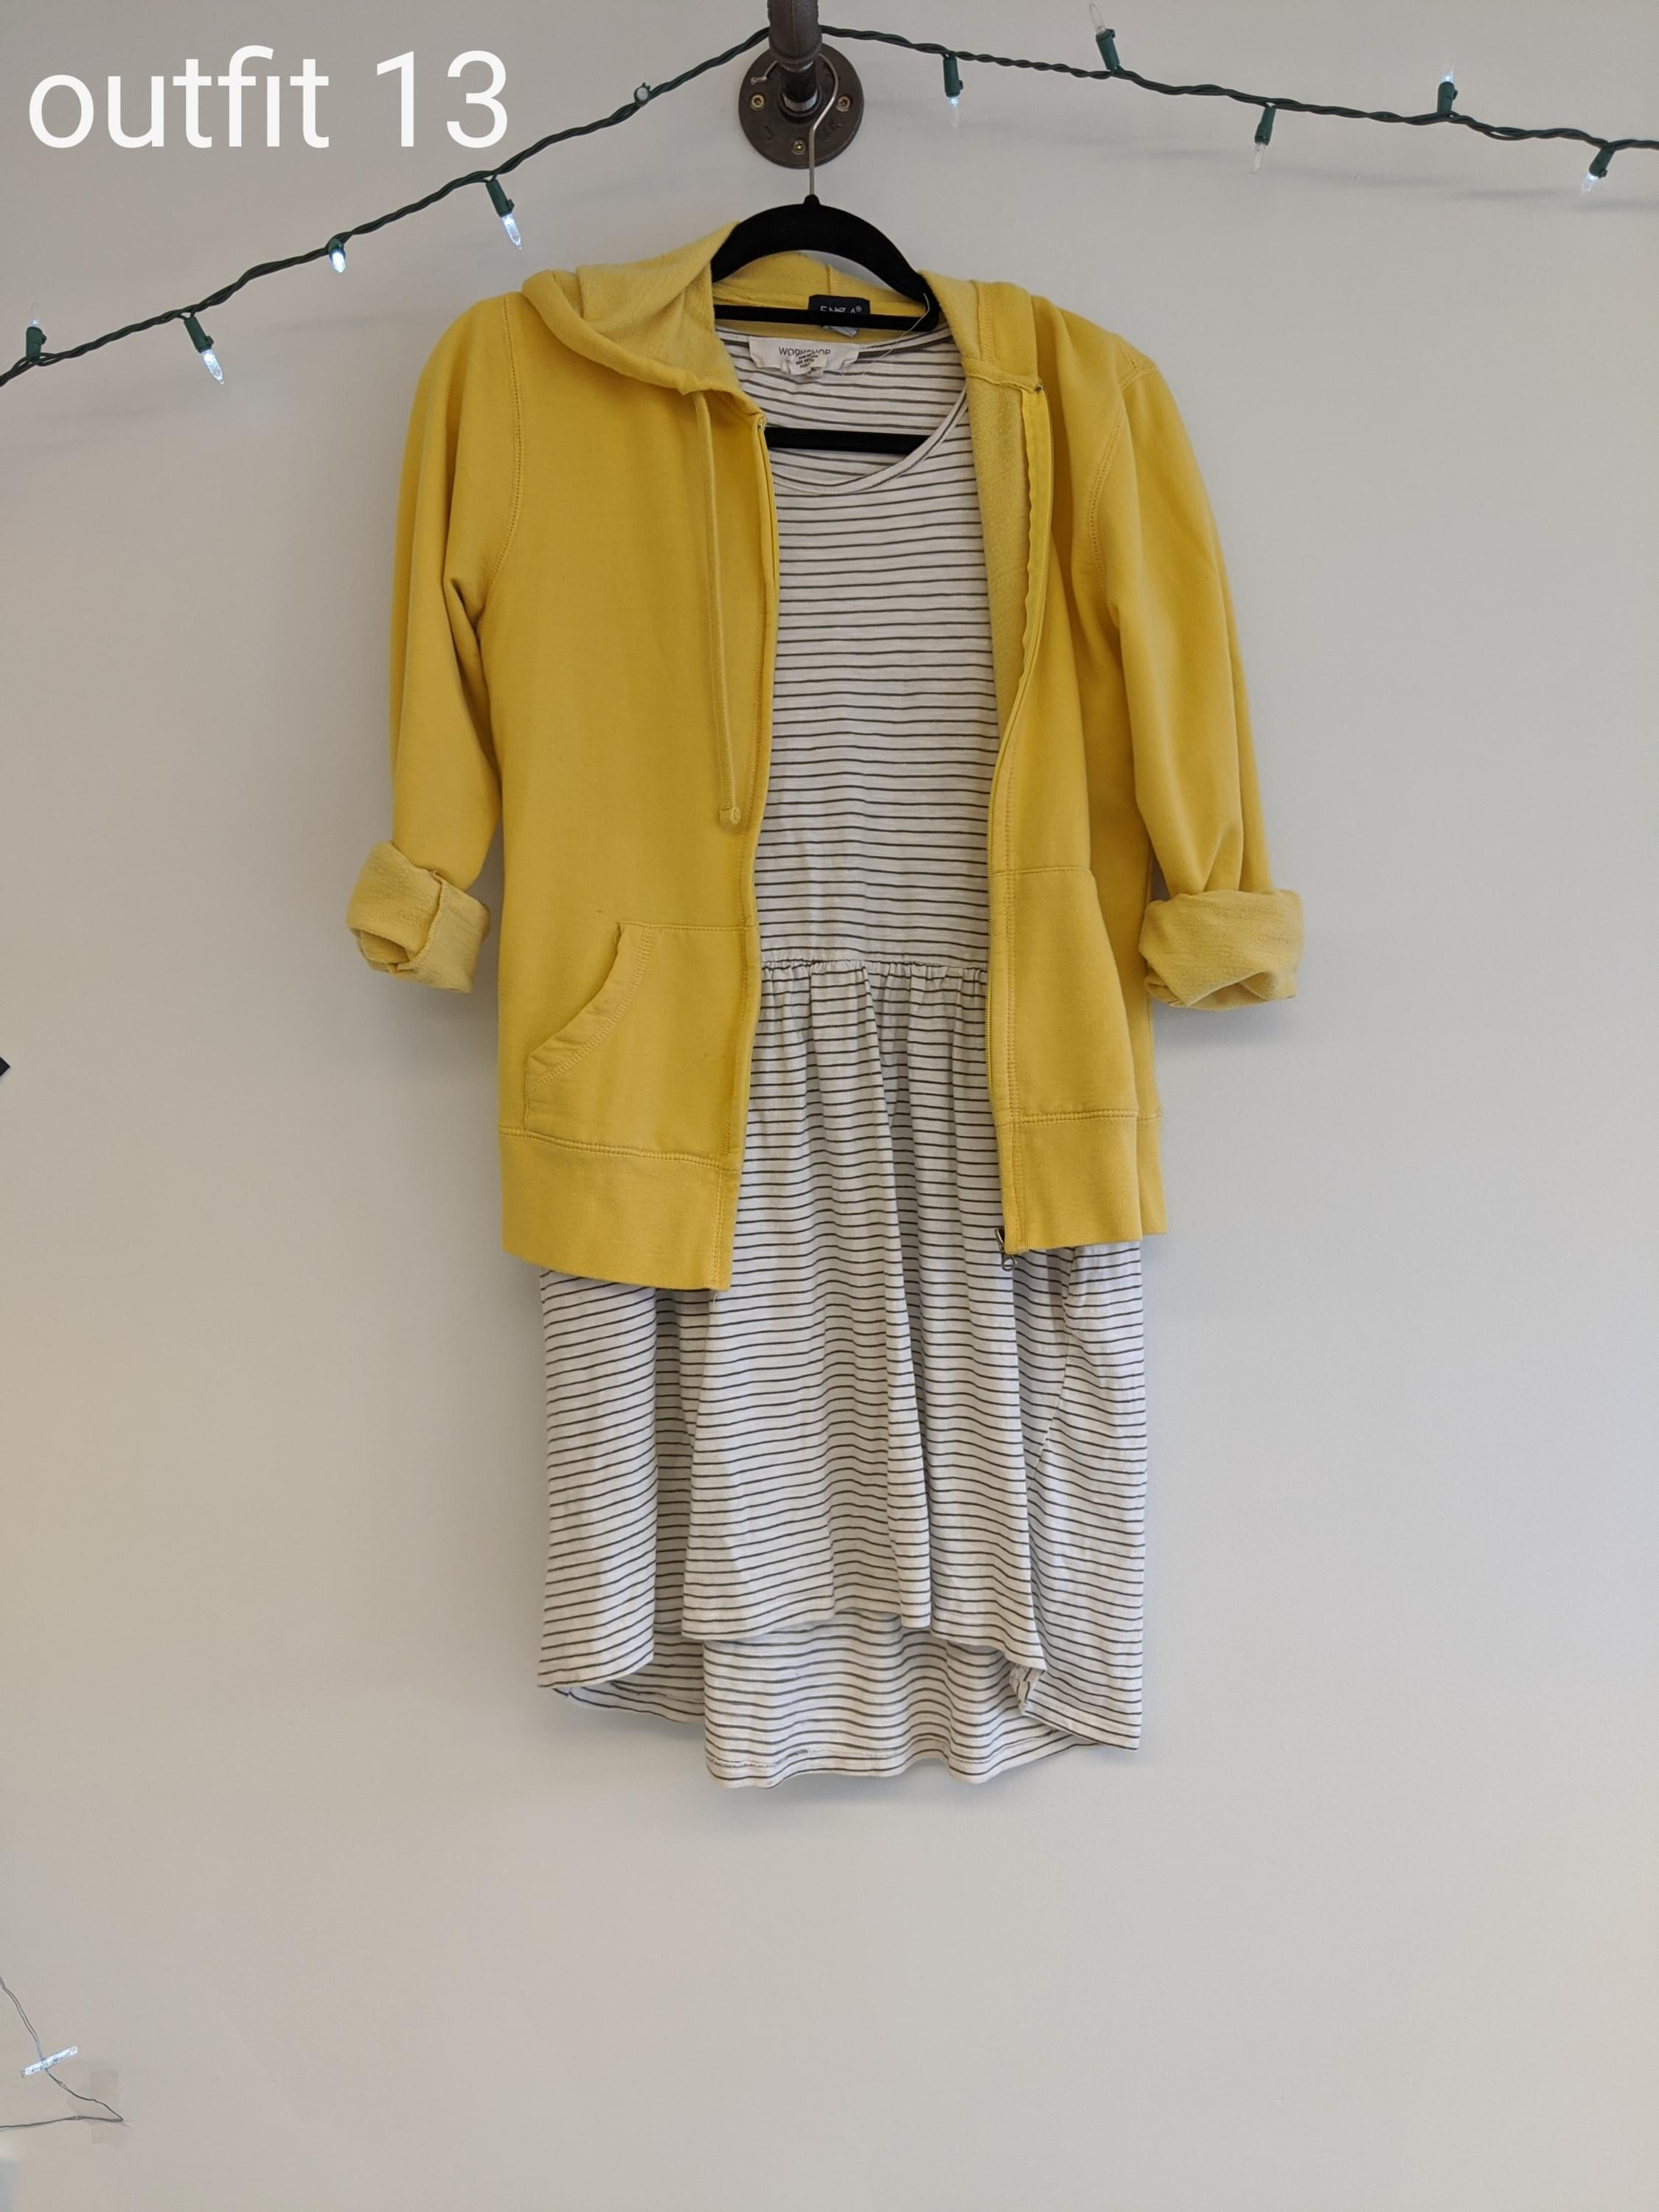 Yellow sweatshirt and stripe dress